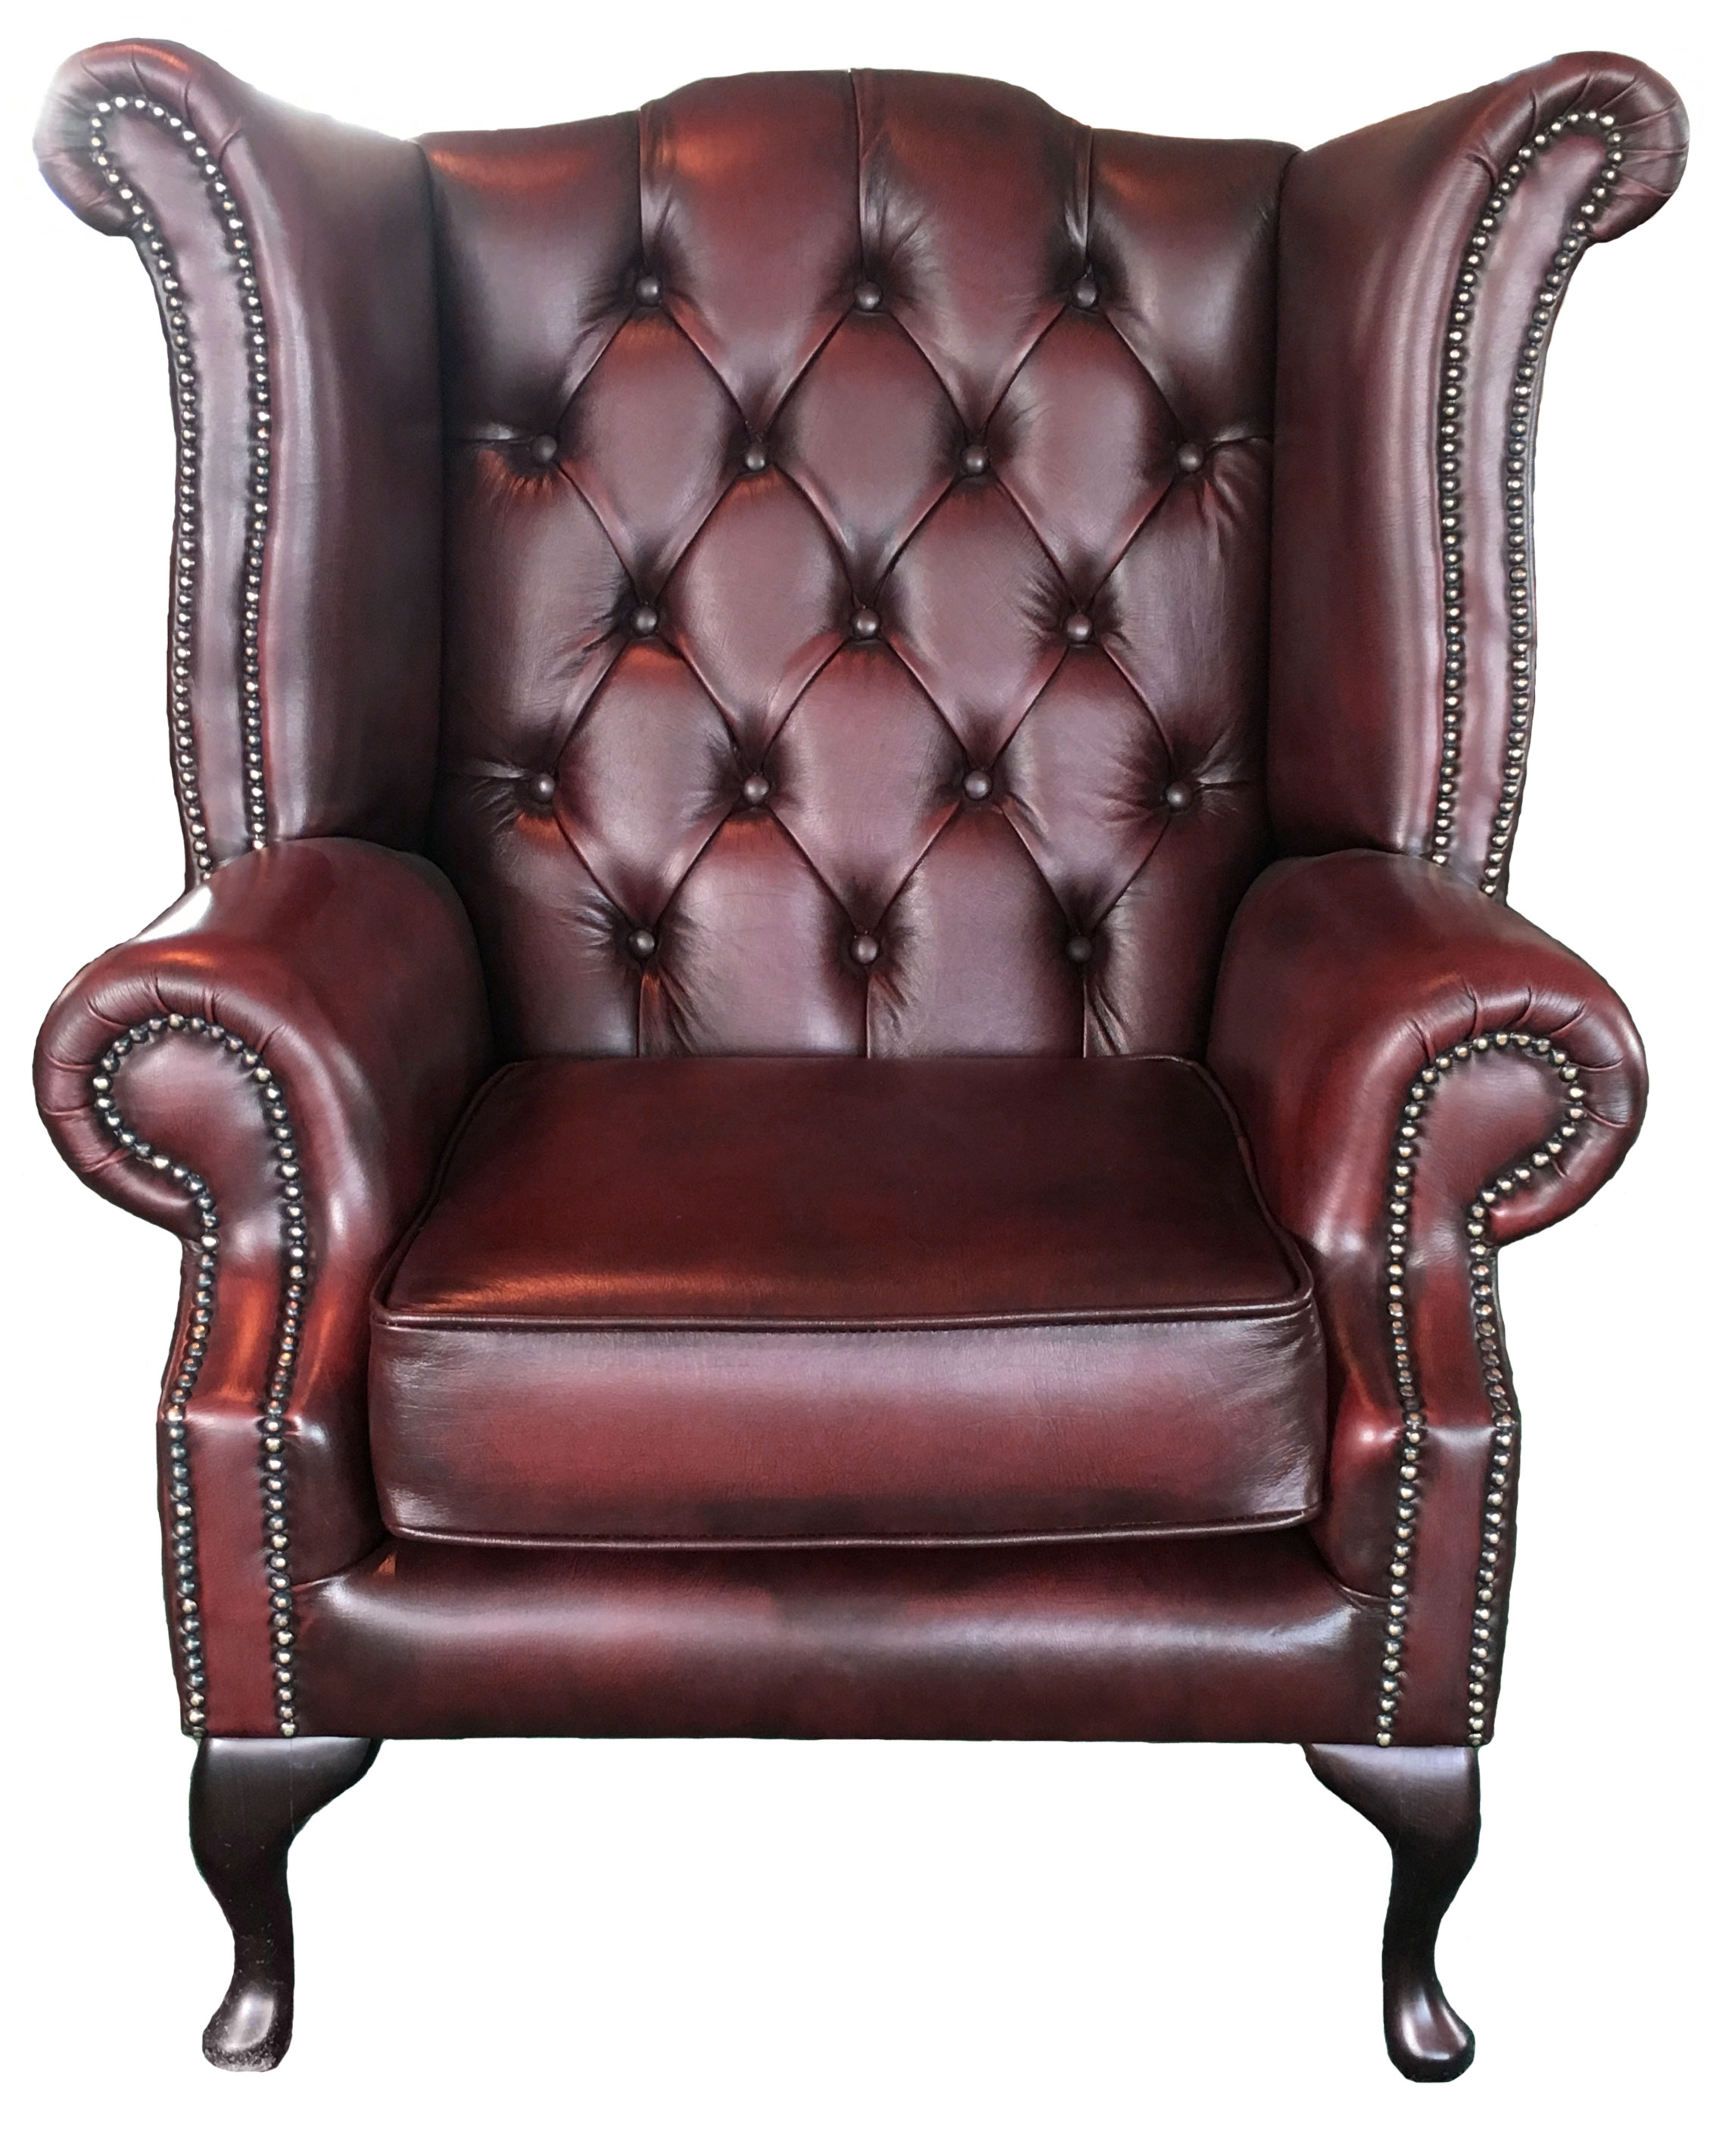 Chesterfield Queen Anne Armchair Antique Oxblood Red Genuine Leather Queen Anne Armchair T31